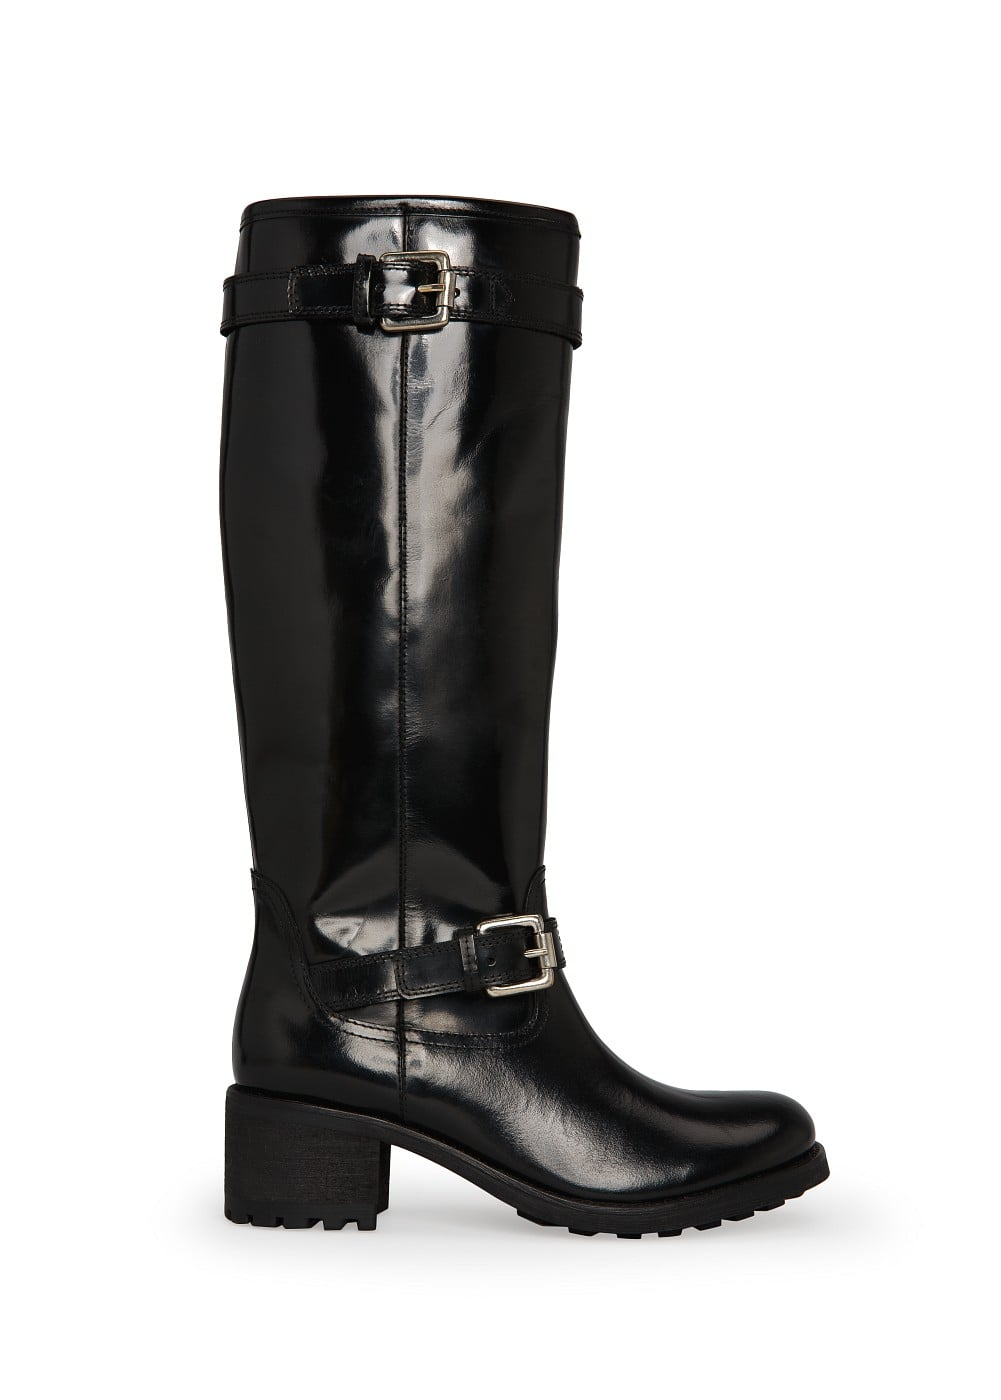 Glossed-leather knee boots